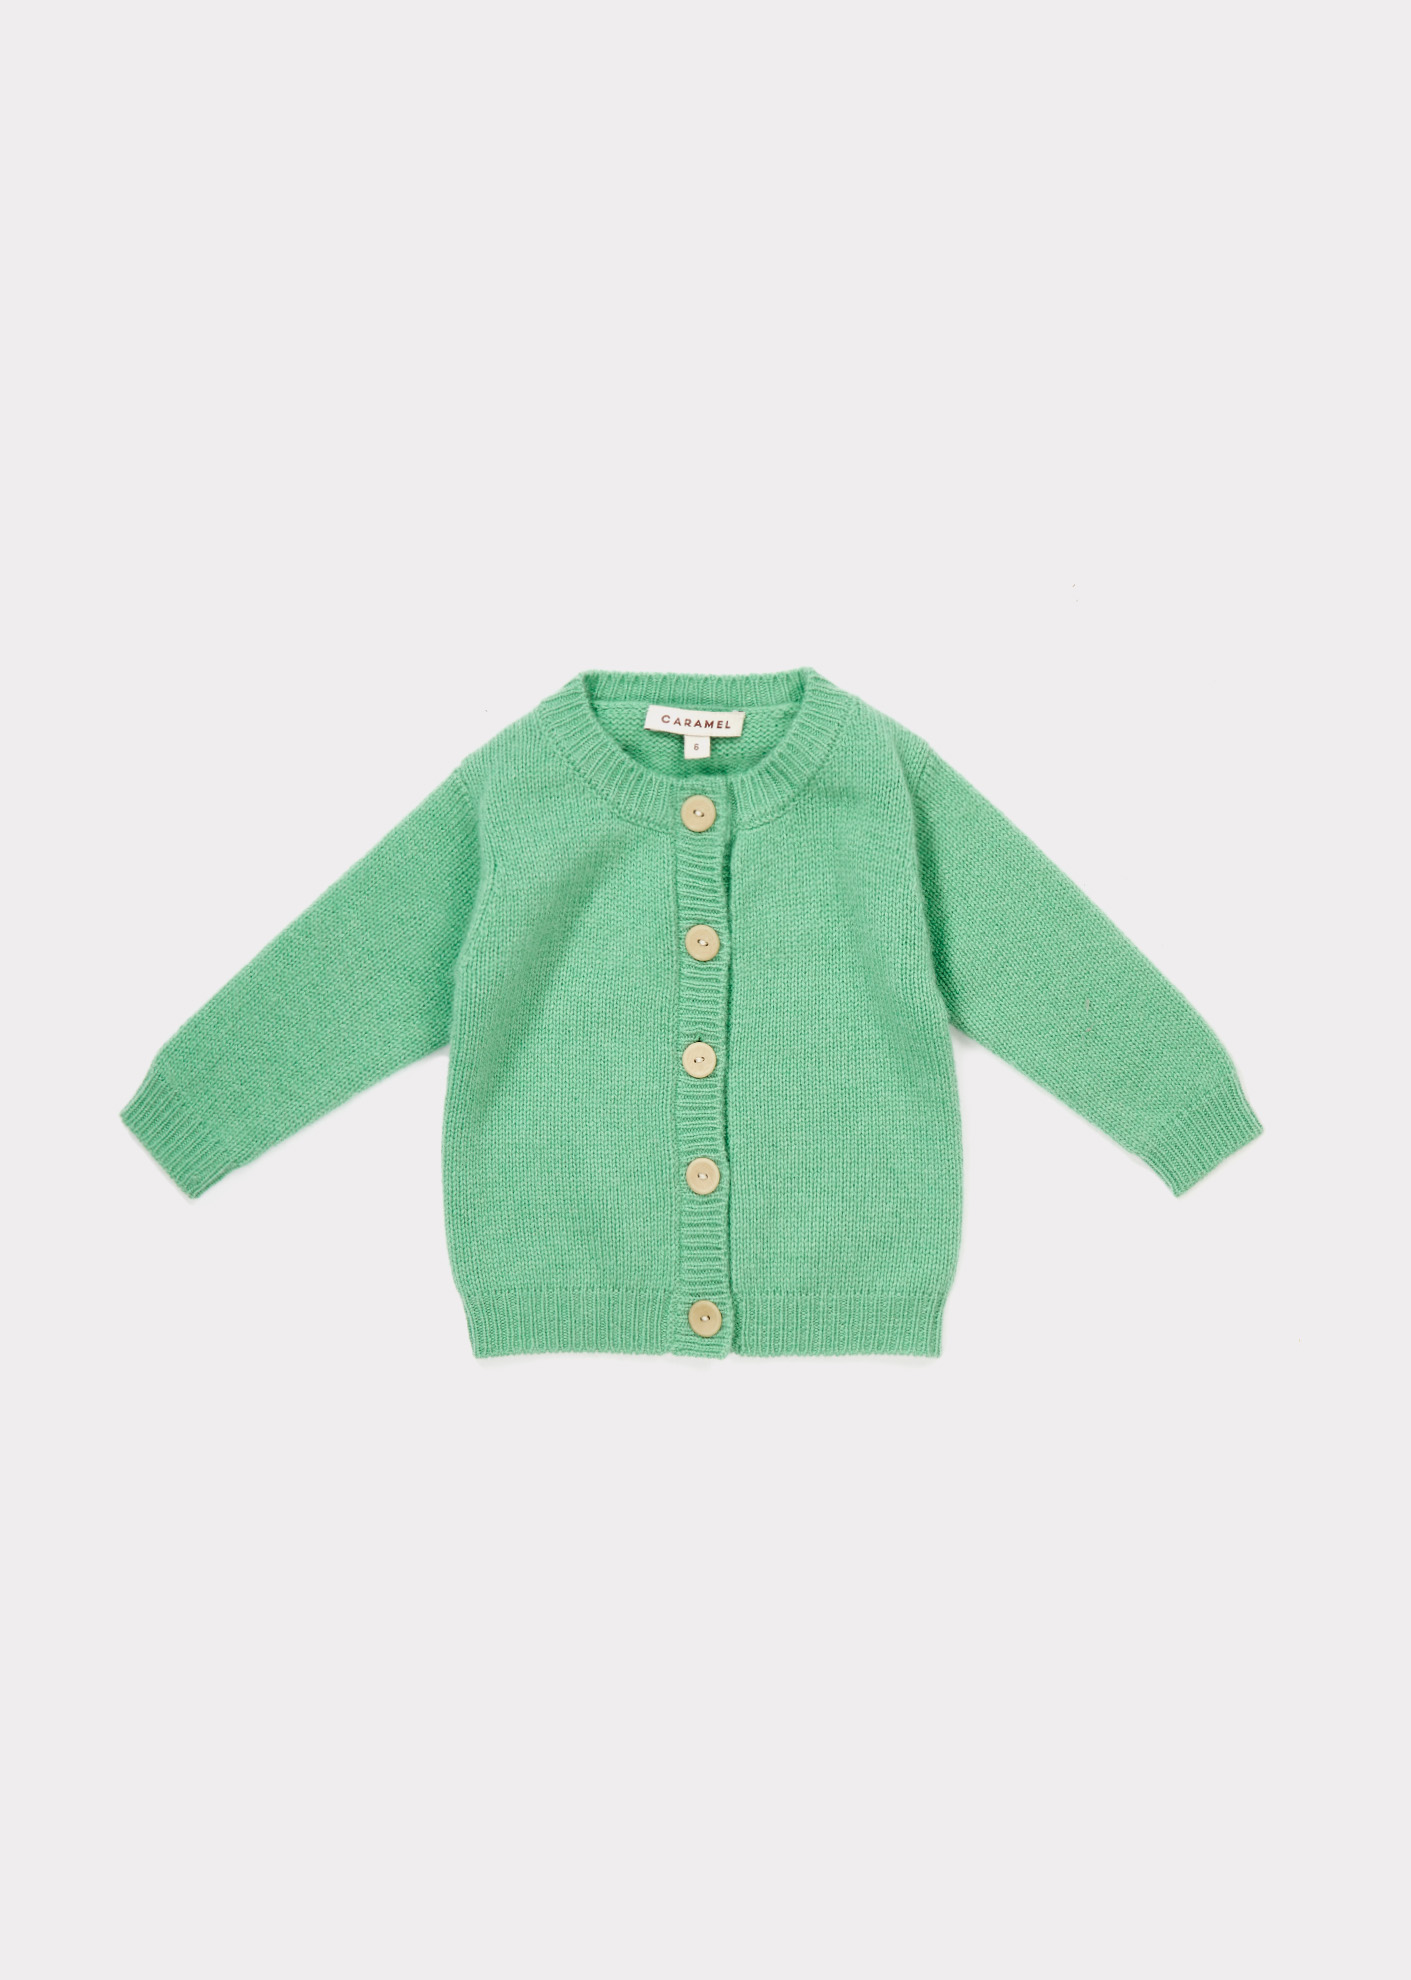 Caramel  - HAYWARD BABY CARDIGAN MINT - Clothing